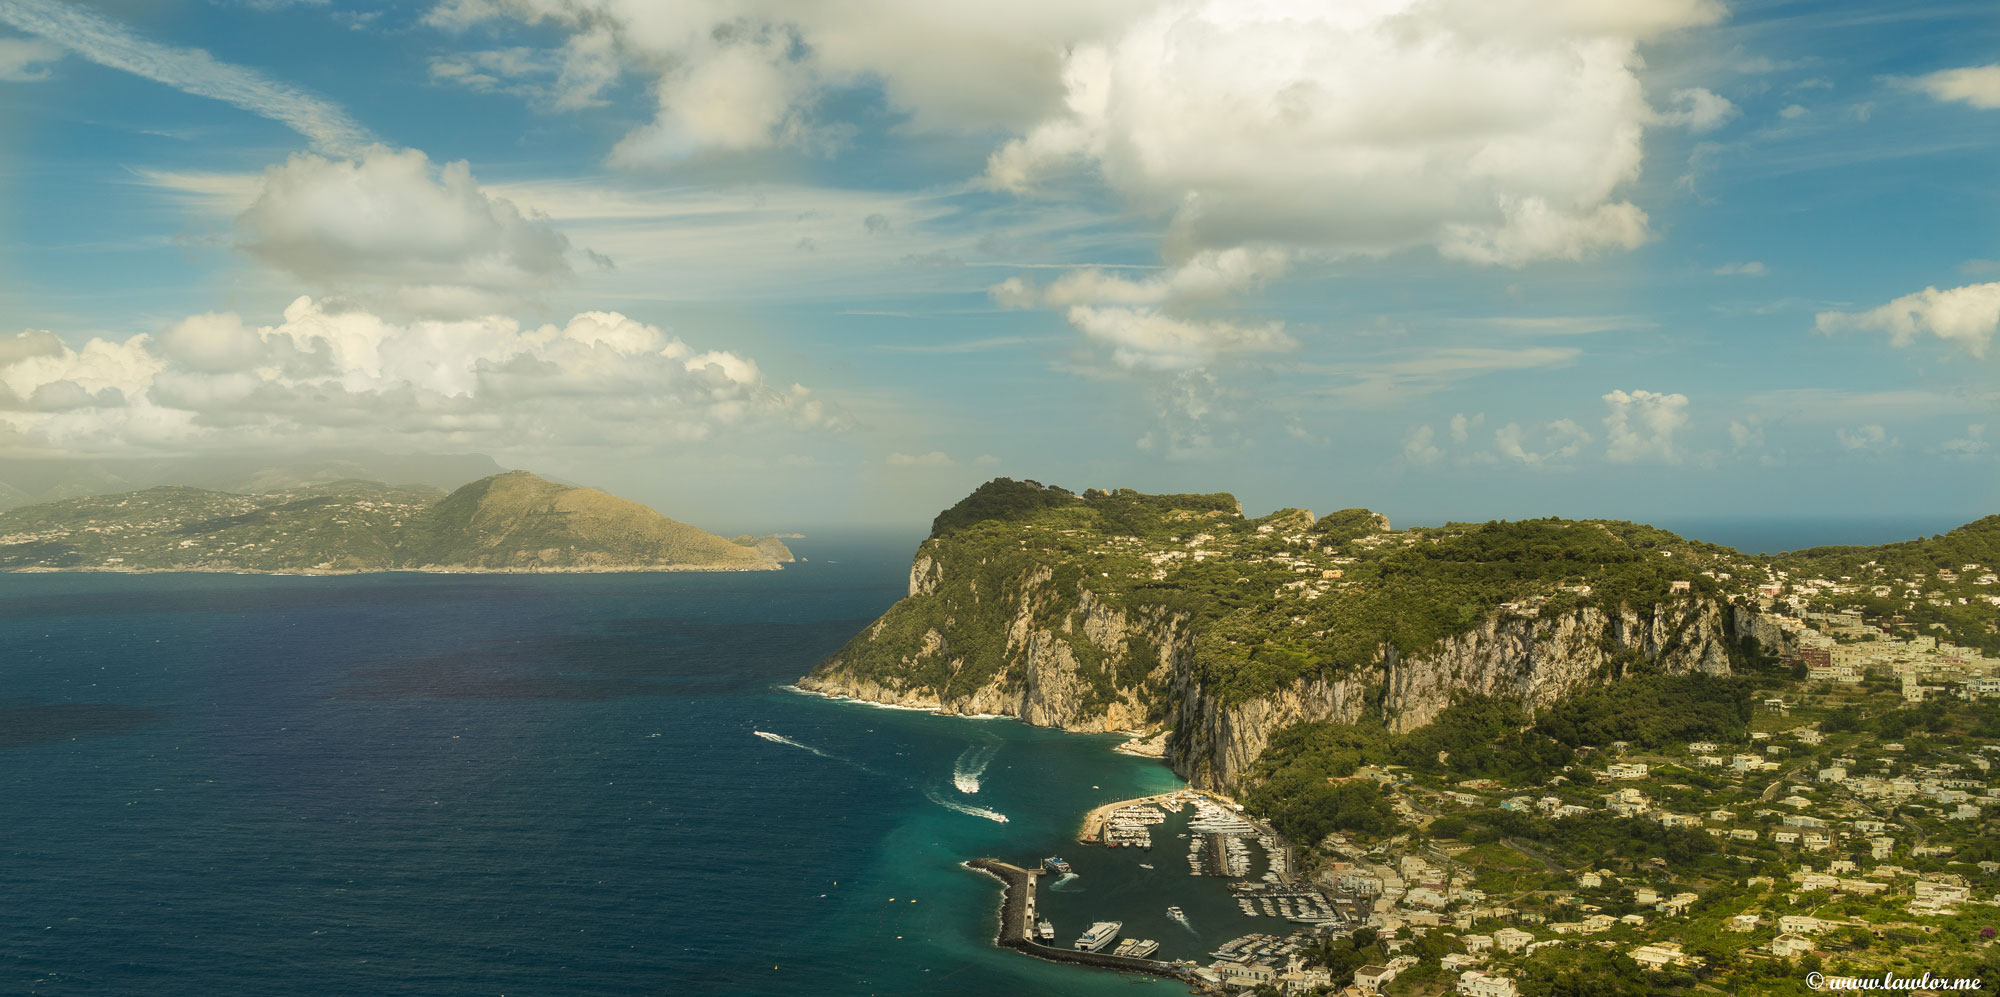 Isle of Capri, Naples - Italy, free landscape photography, free landscape photos, free nature images, free HD images, free high definition stock images, free stock images download, free screensaver, landscape screensaver, free screensavers, mac screensaver, free apple landscape screensavers, download landscapes, download nature photos, Steve Lawlor Photography, Stephen Lawlor photography, irish landscape photographer, Australia landscapephotography, Melbourne landscape photographer, travel website, travel map, travel south america, journey through central america, travel europe, travel australia, desktop wallpaper, desktop backgrounds, windows backgrounds